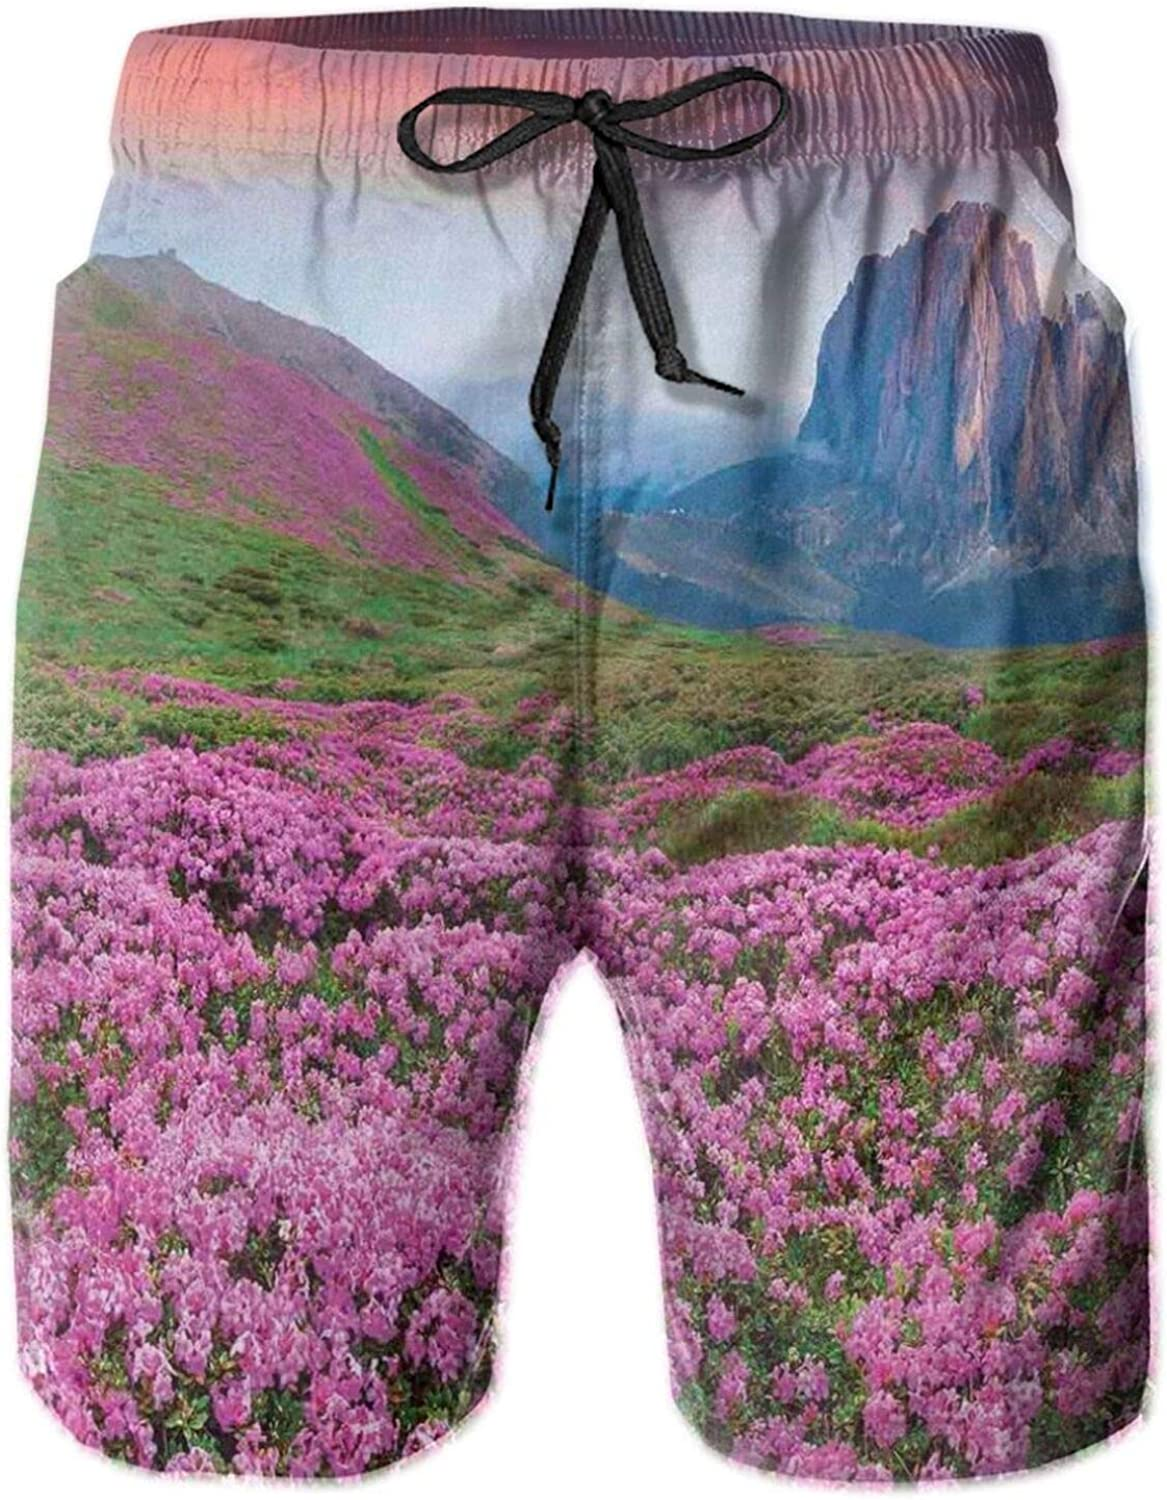 Colorful Field of Blossom in The Morning Grand Dramatic Mountains Canyon Art Swimming Trunks for Men Beach Shorts Casual Style,XL